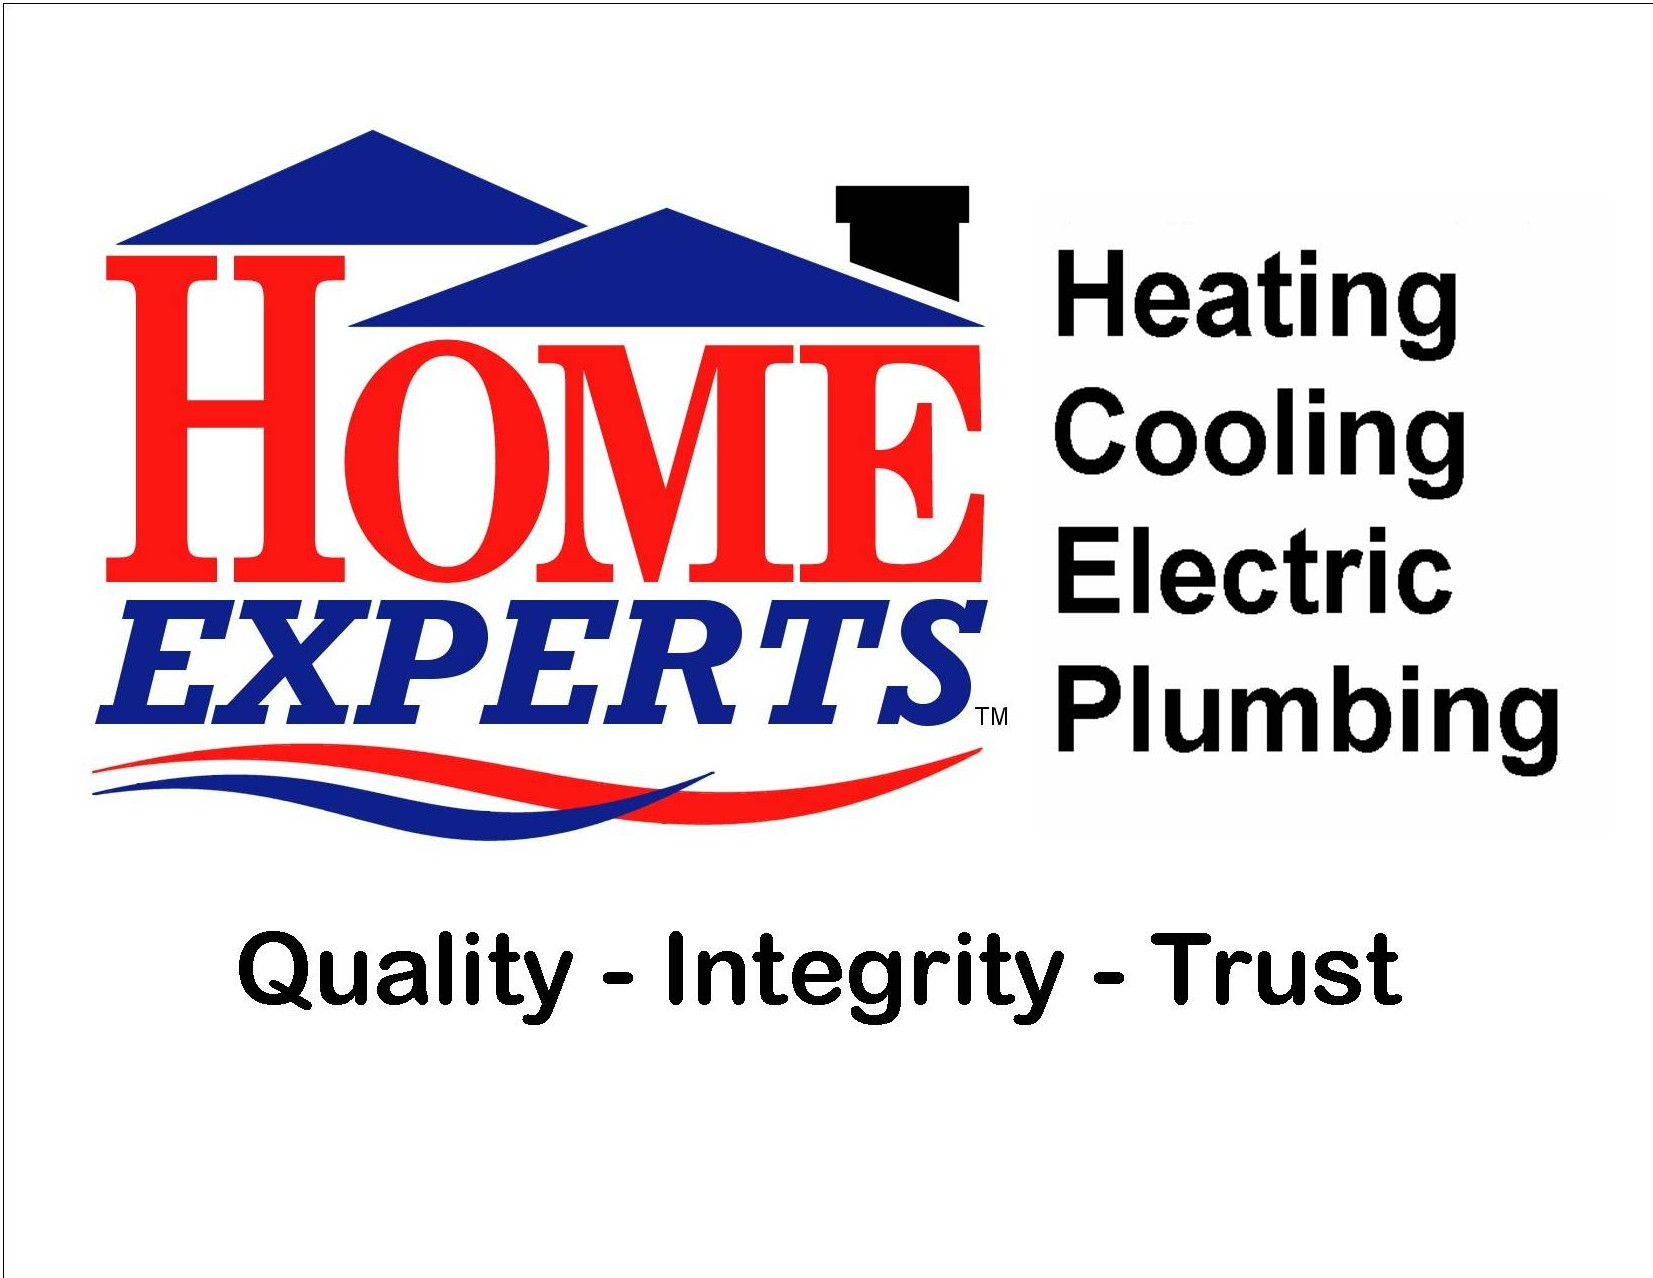 Call Home Experts Heating, Cooling & Plumbing for reliable Furnace repair in Ionia MI